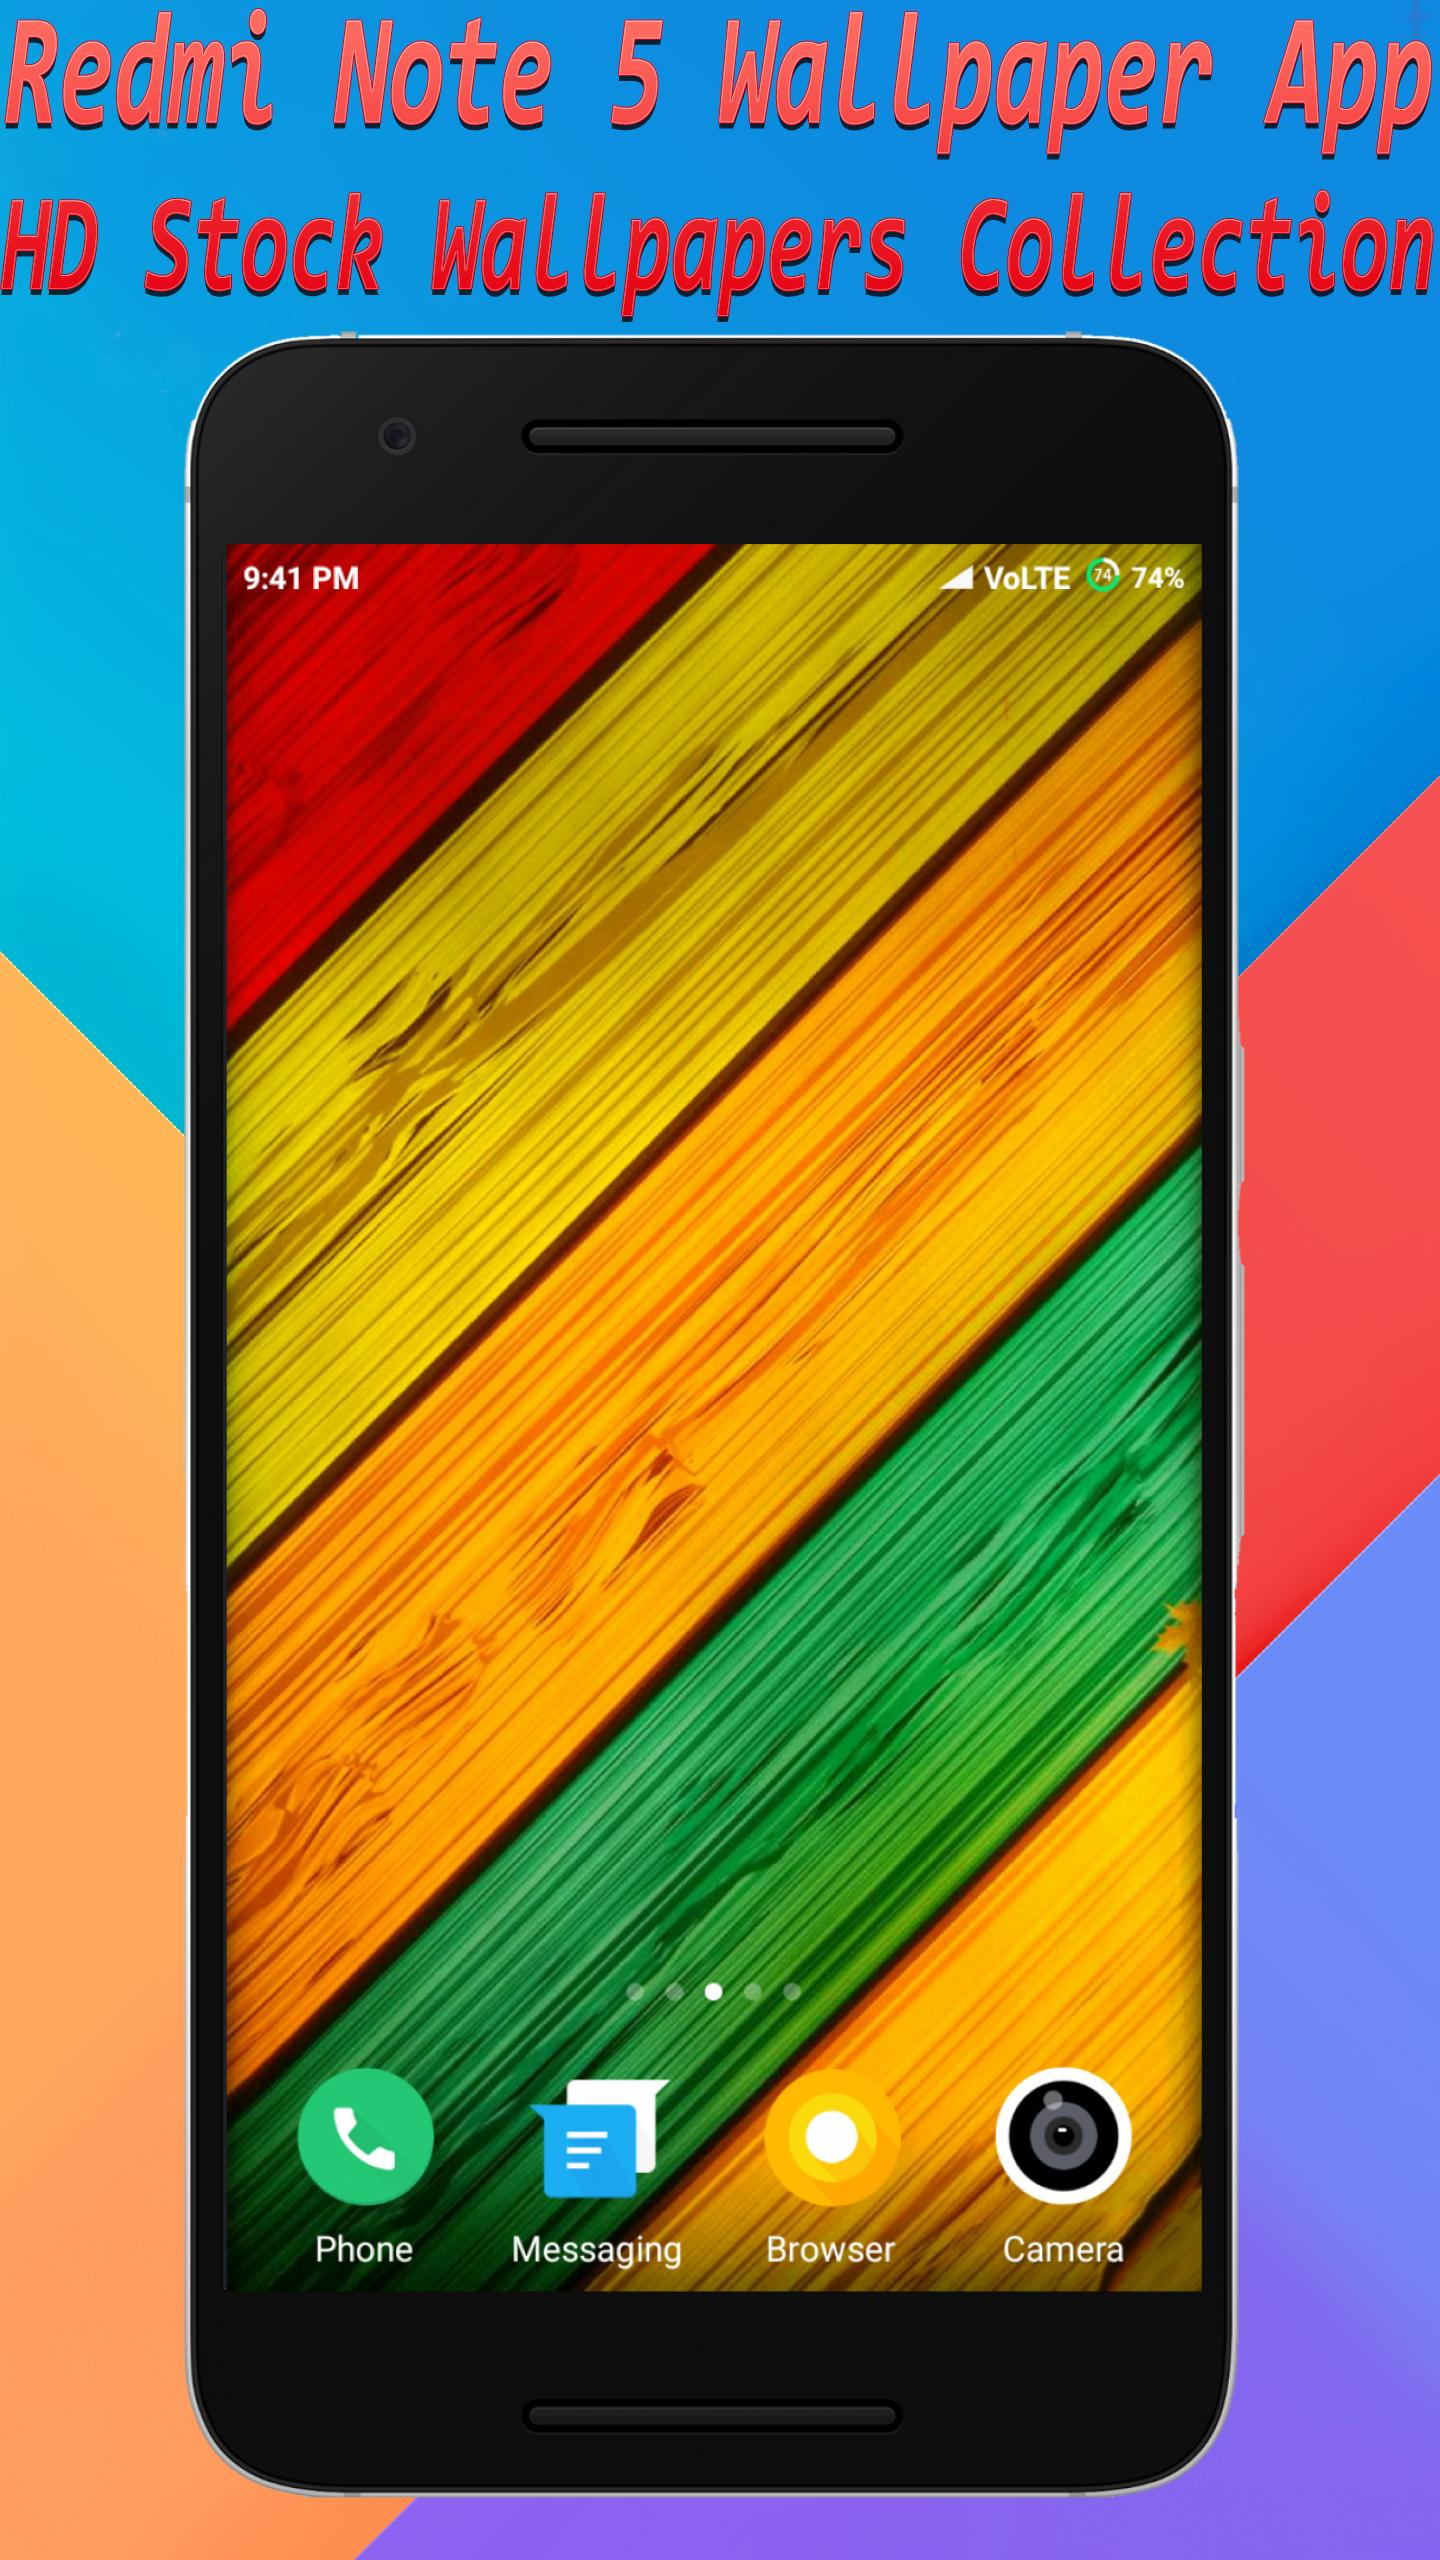 Wallpaper for Mi Redmi Note 7 Pro Wallpaper, mi hd for Android - APK